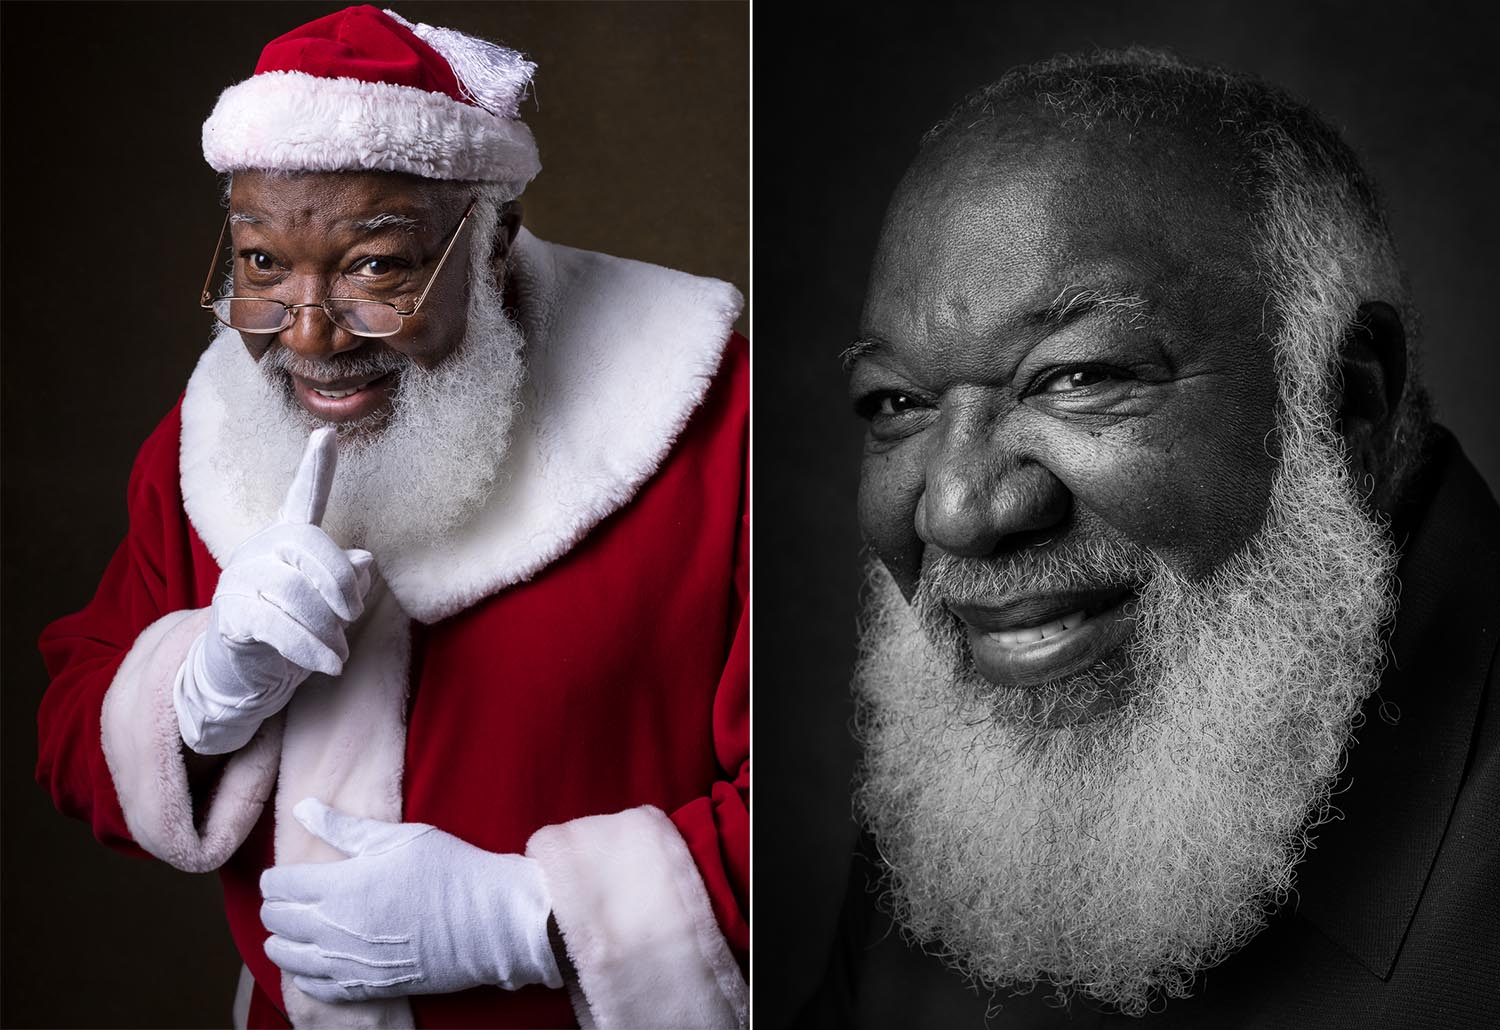 "James Nuckles, from Atlanta, Ga. is one of the relatively few African-American Santas, according to Cooper. Nuckles told Cooper that both white and Black children have asserted that he's not the real Santa Claus because he's not white. Nuckles responds by asking them, ""What color is Santa? How do you know?"" He usually tells these naysayers about the historical Saint Nicholas, who is often depicted as dark-skinned."